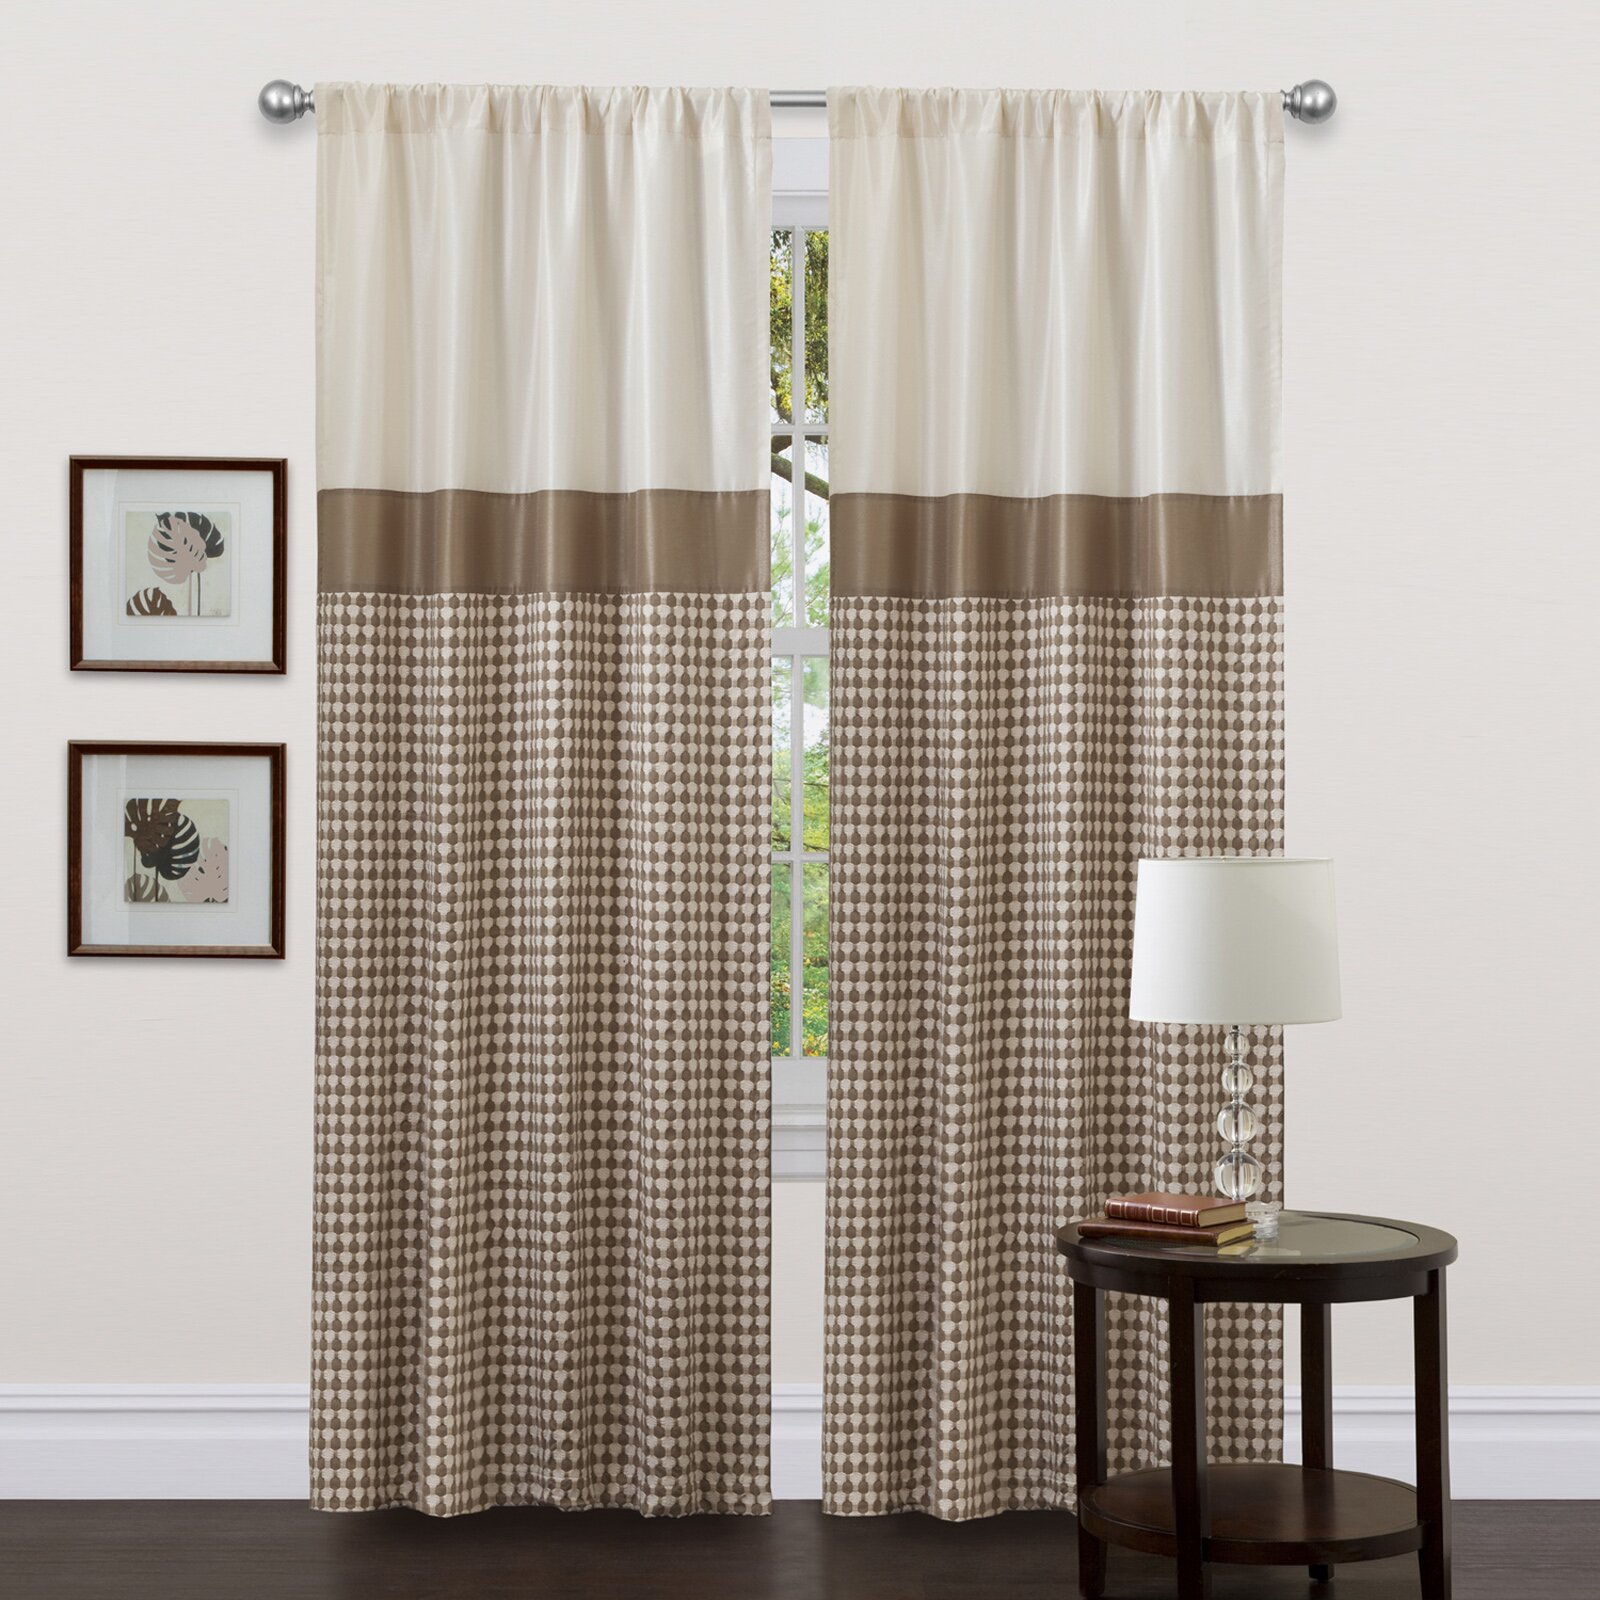 waldorf single curtain panel - Rust Color Curtains